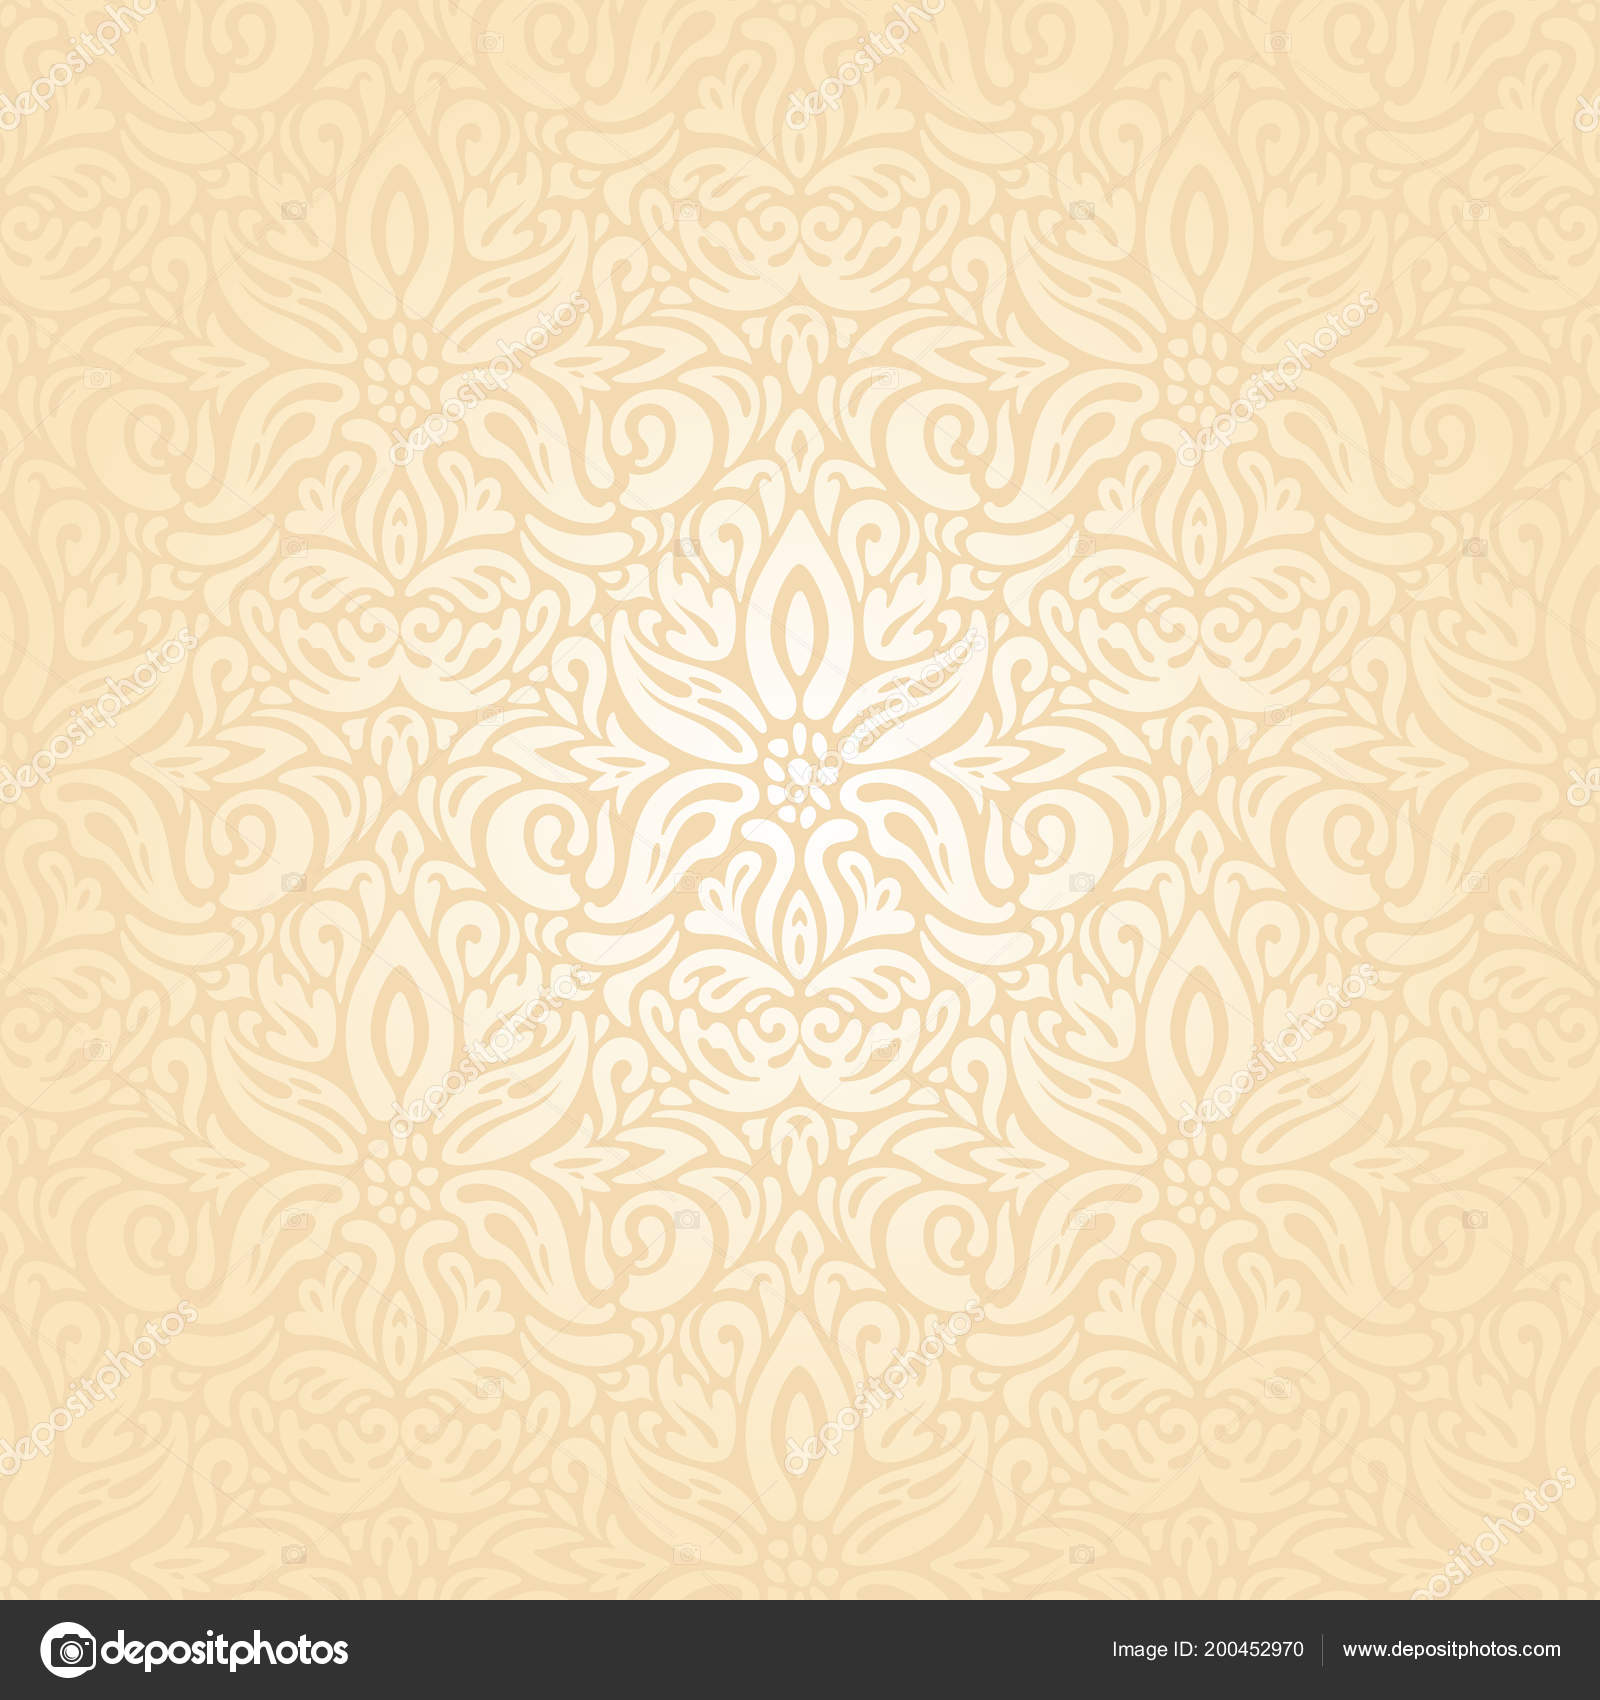 bridal retro wedding pale peach invitation background design vintage style stock vector c erinvilar 200452970 https depositphotos com 200452970 stock illustration bridal retro wedding pale peach html